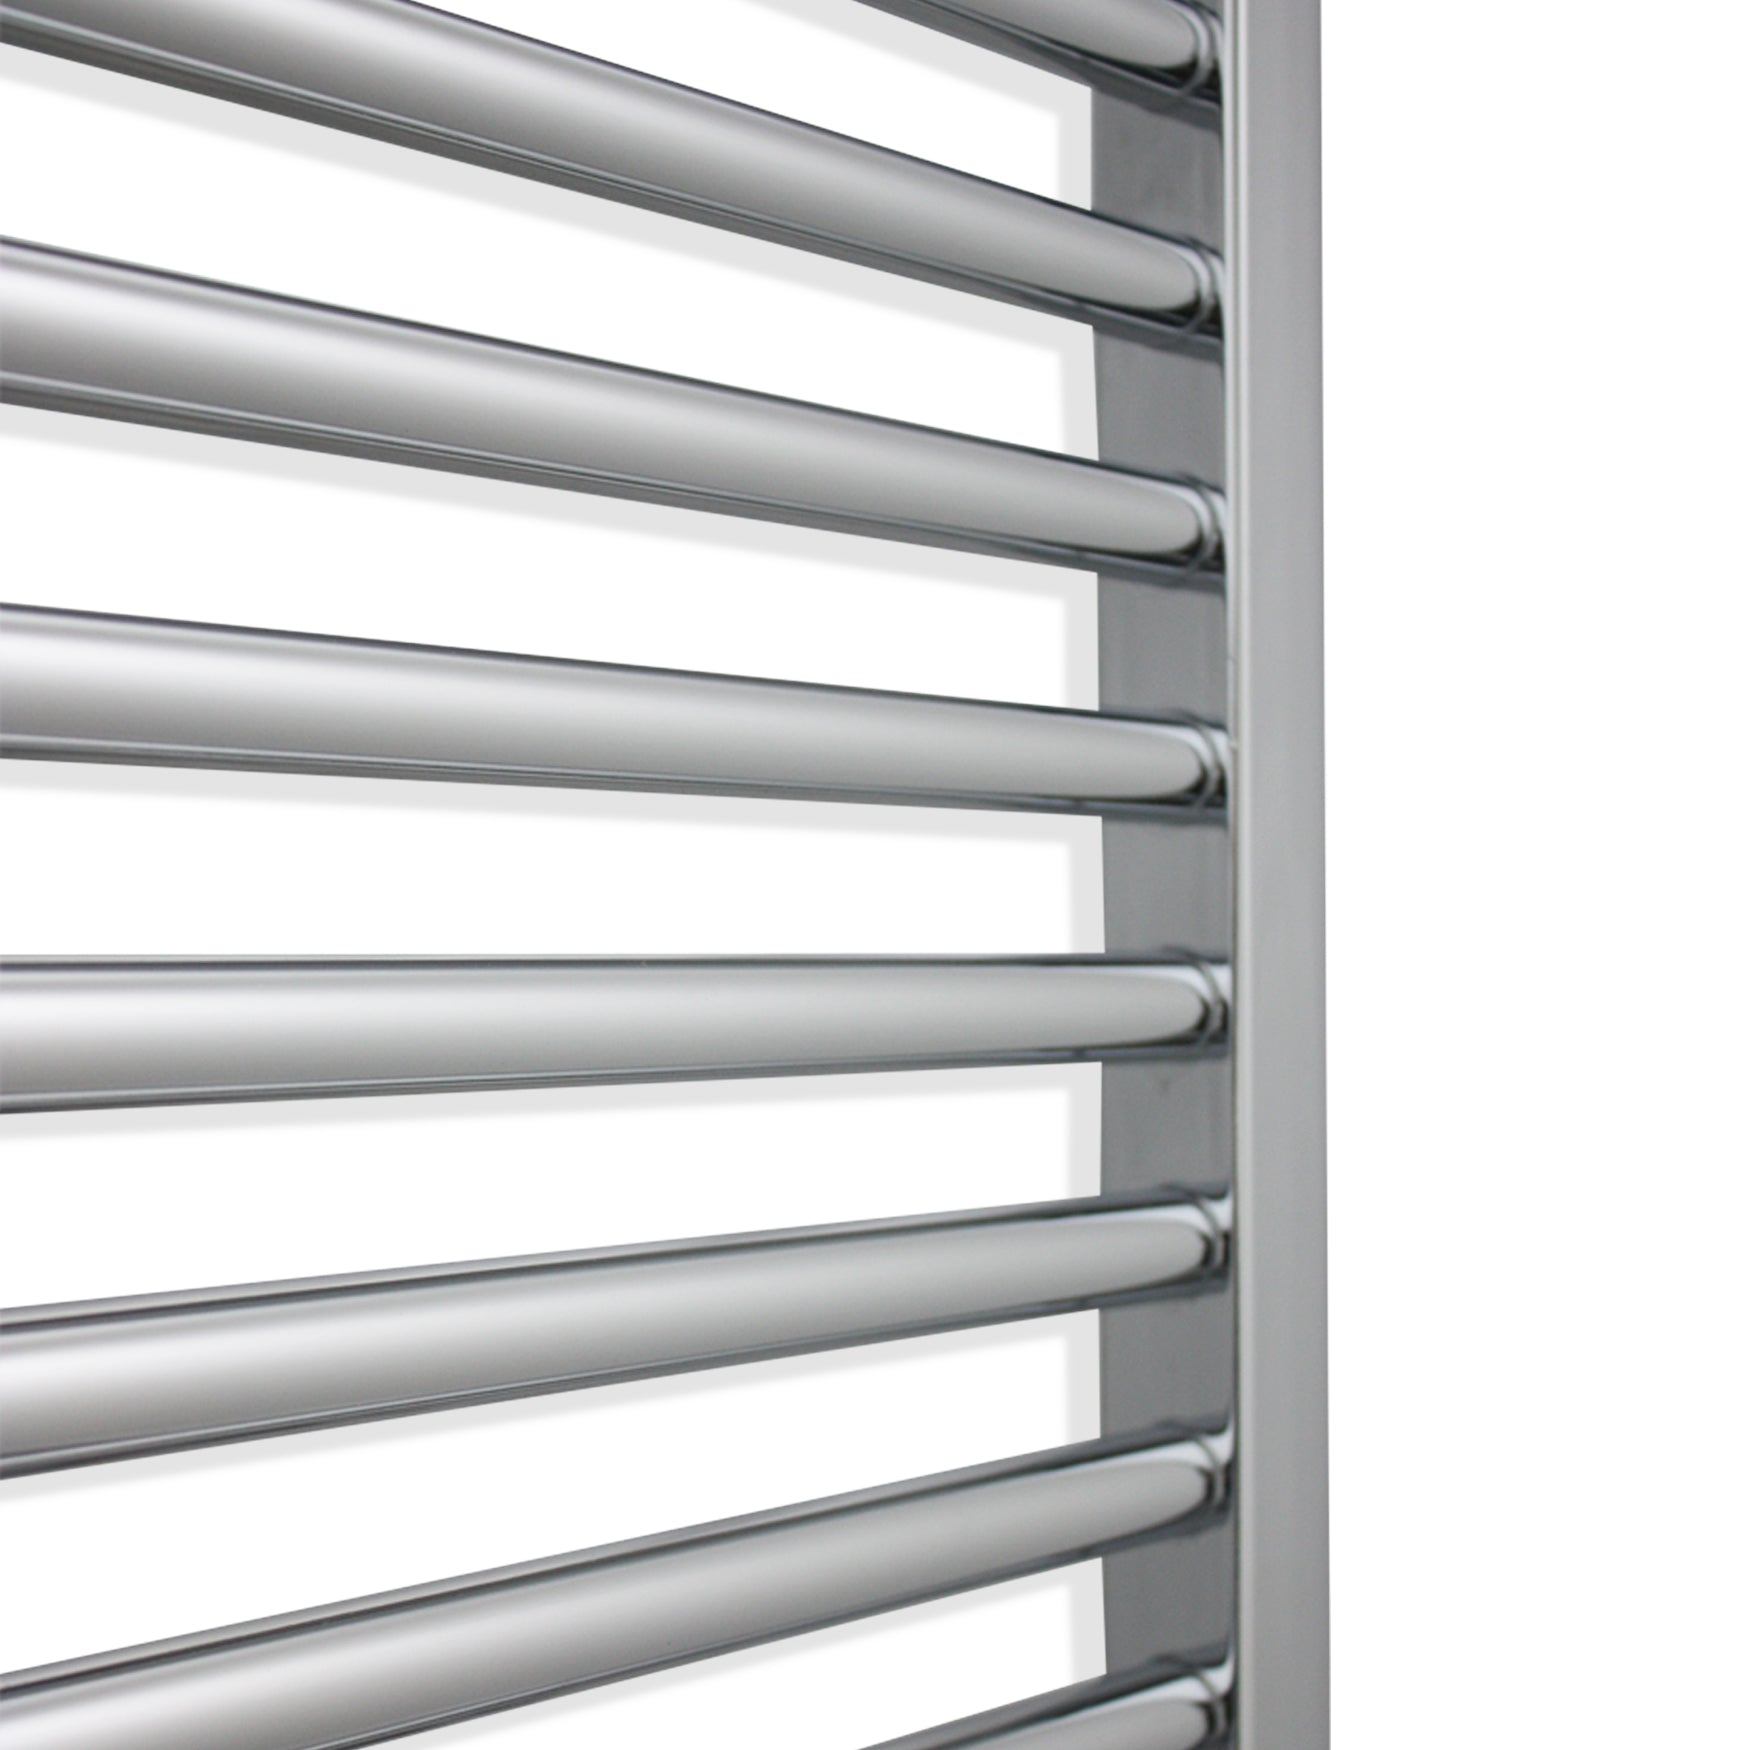 600mm Wide 1200mm High Flat Chrome Pre-Filled Electric Heated Towel Rail Radiator HTR